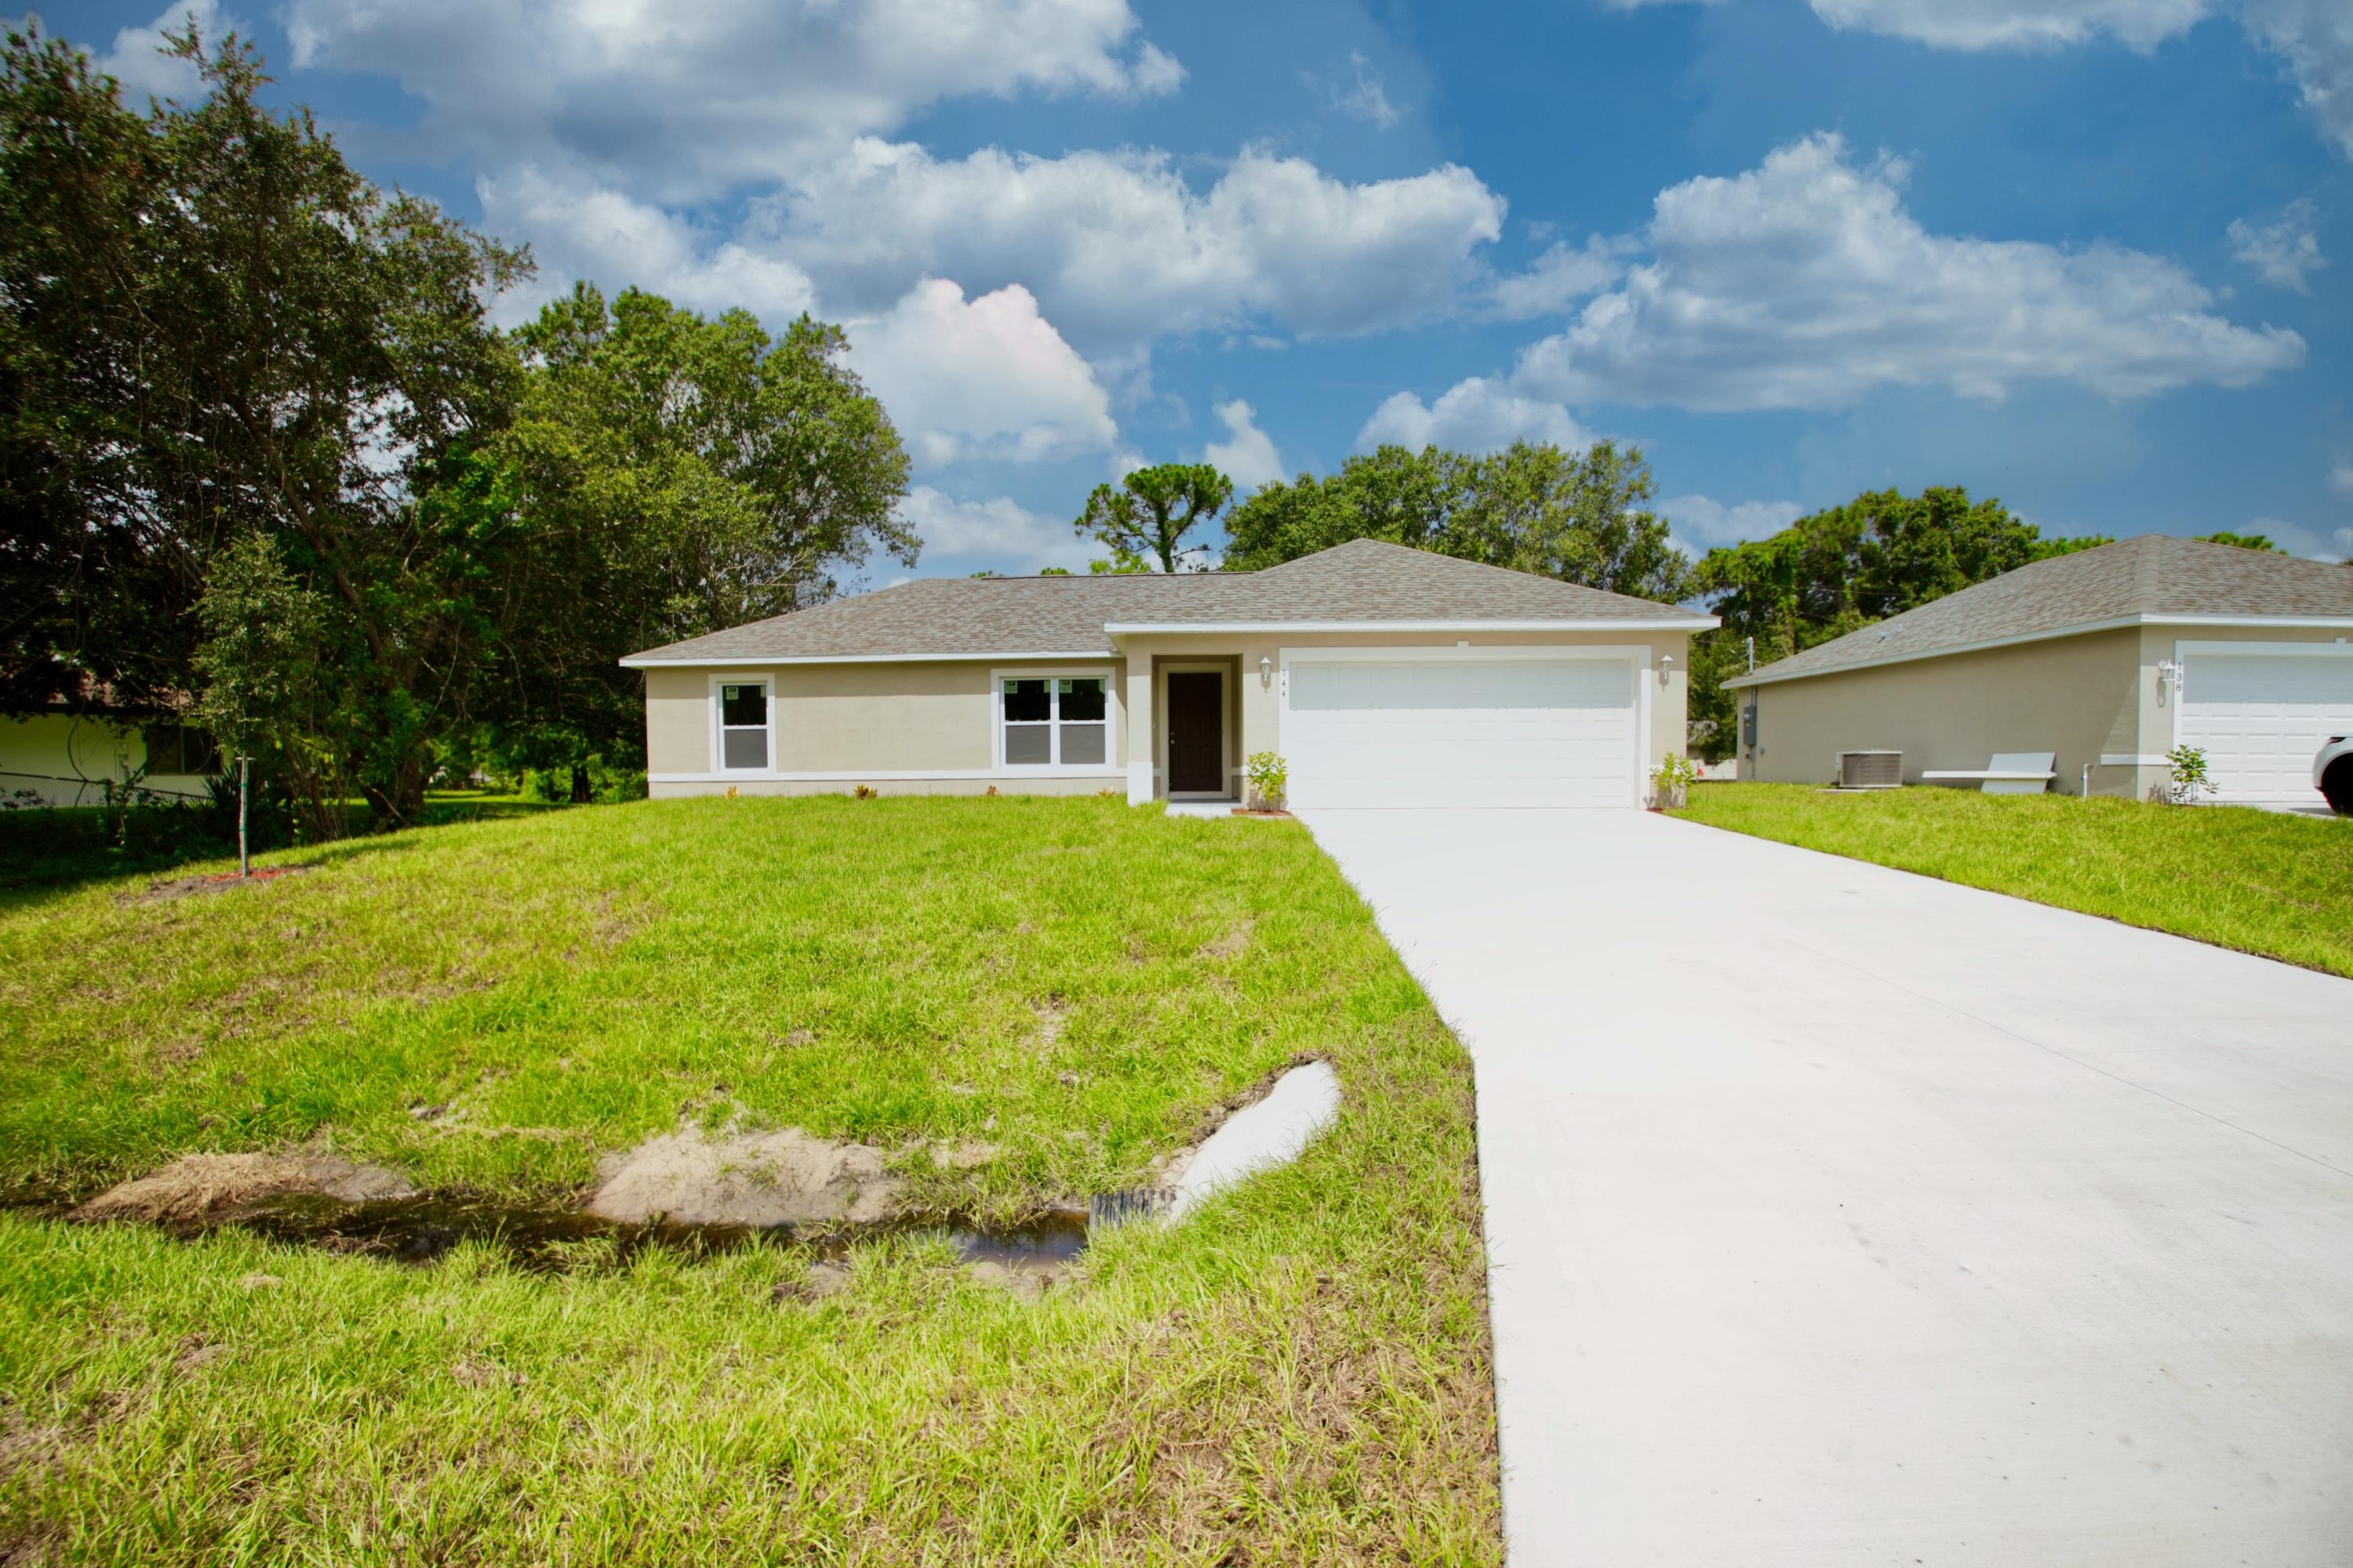 Photo of 144 S Oak Street, Fellsmere, FL 32948